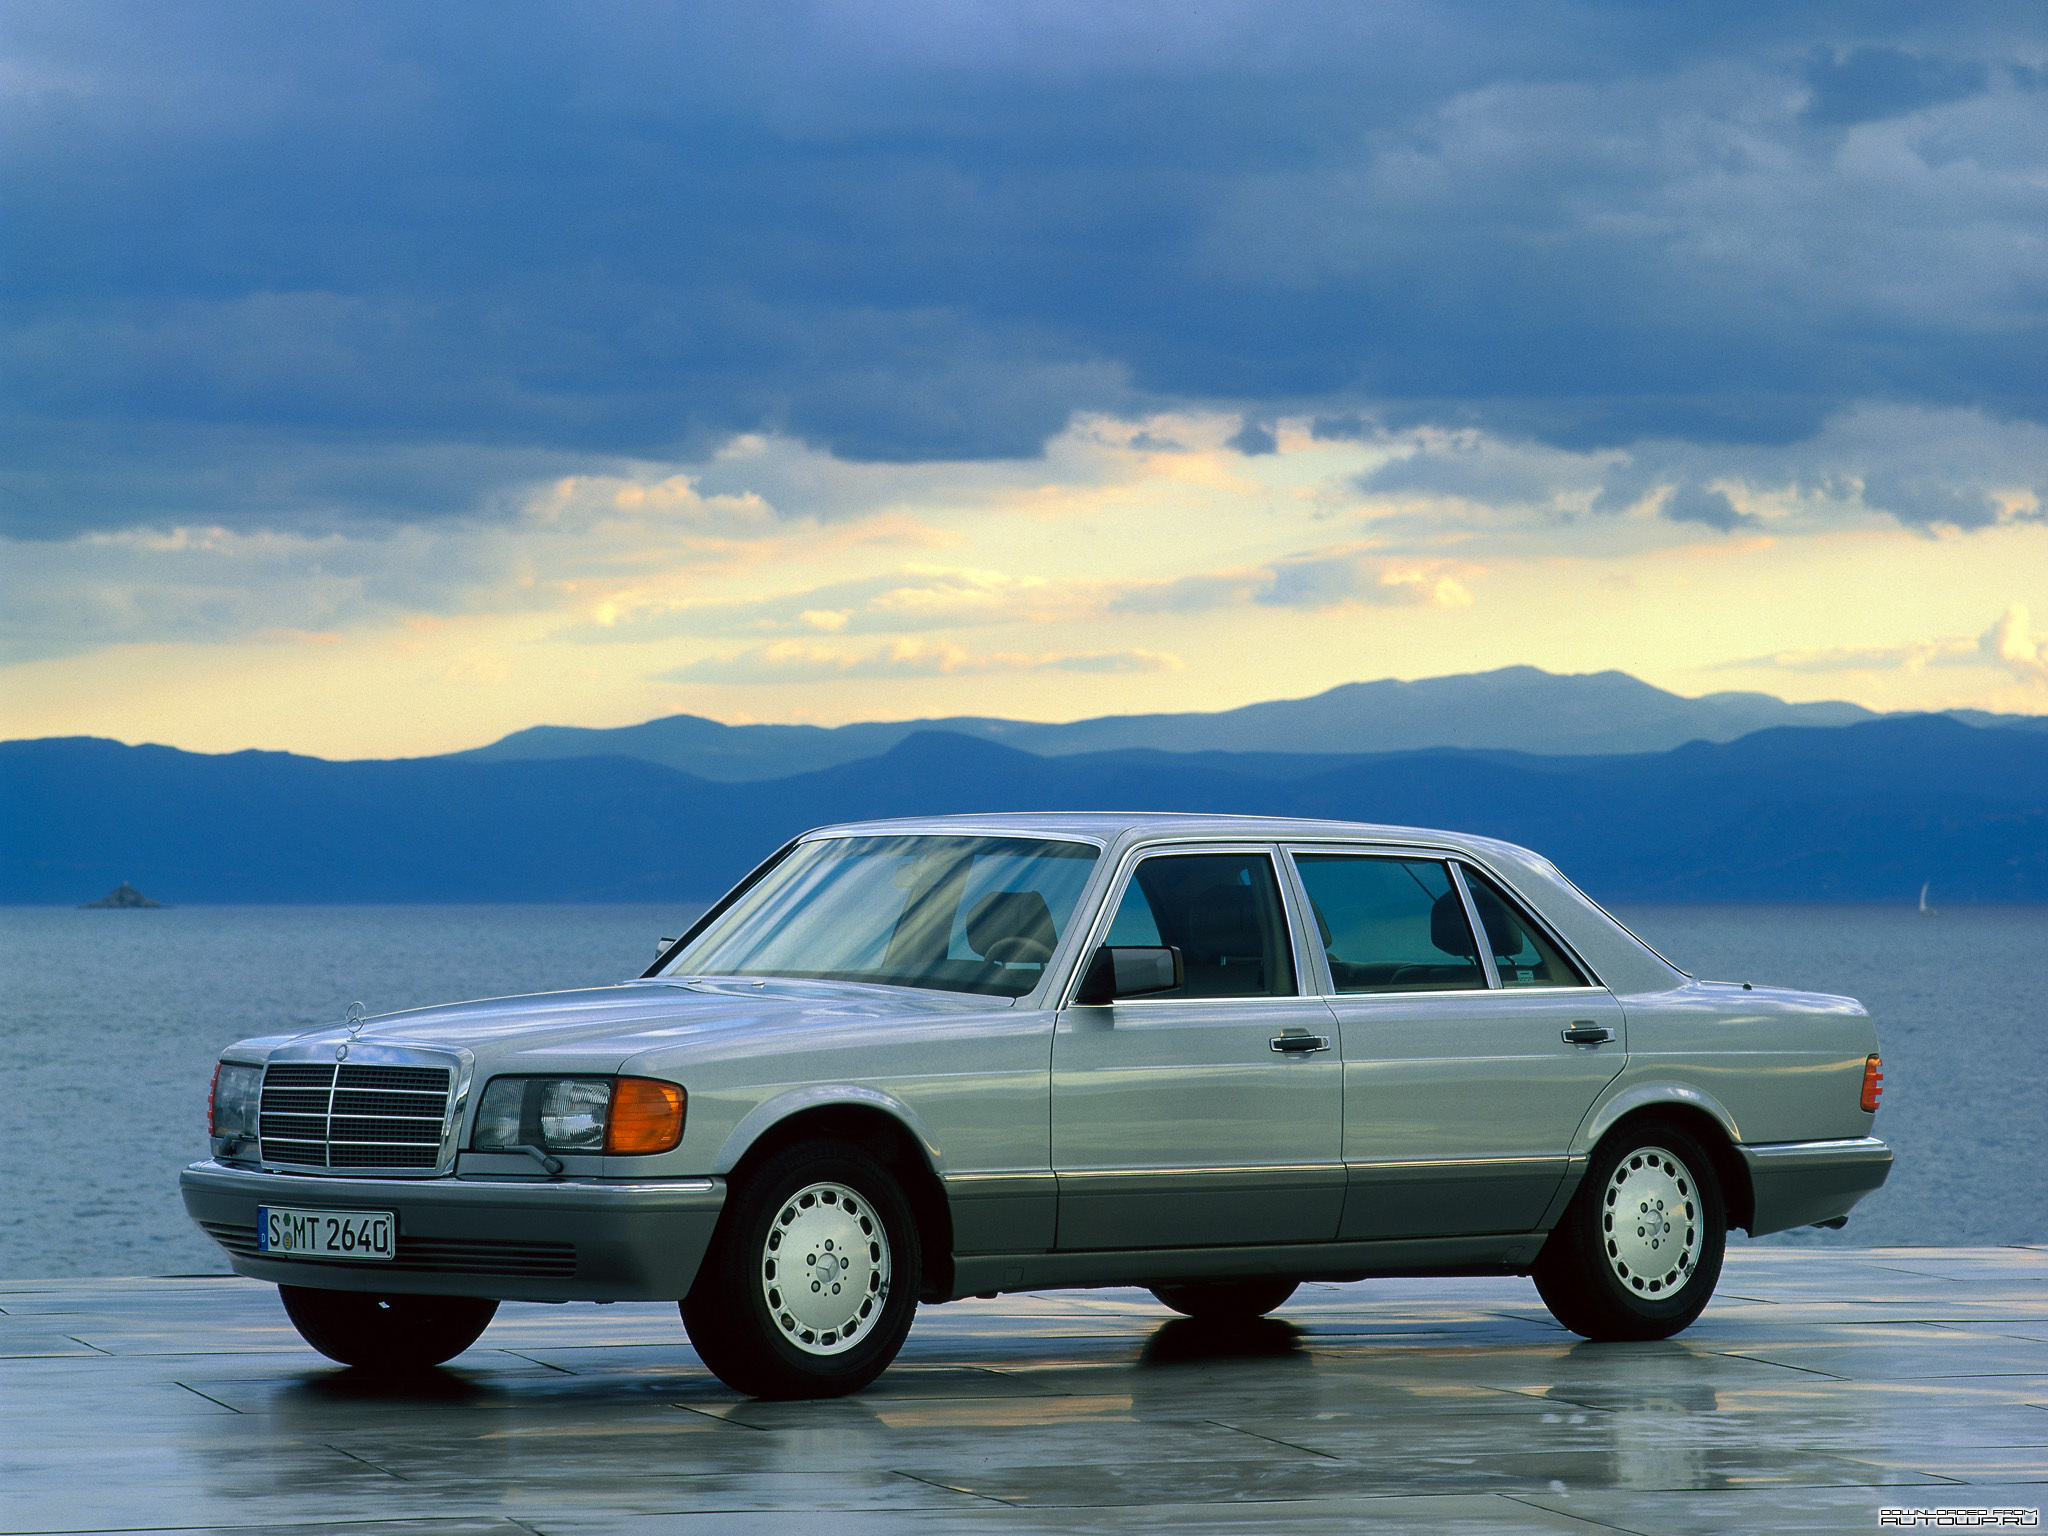 Mercedes Benz S Class W126 Picture 76794 Photo Wiring Diagram For W124 Pic Link Https Mk35 Pic76794